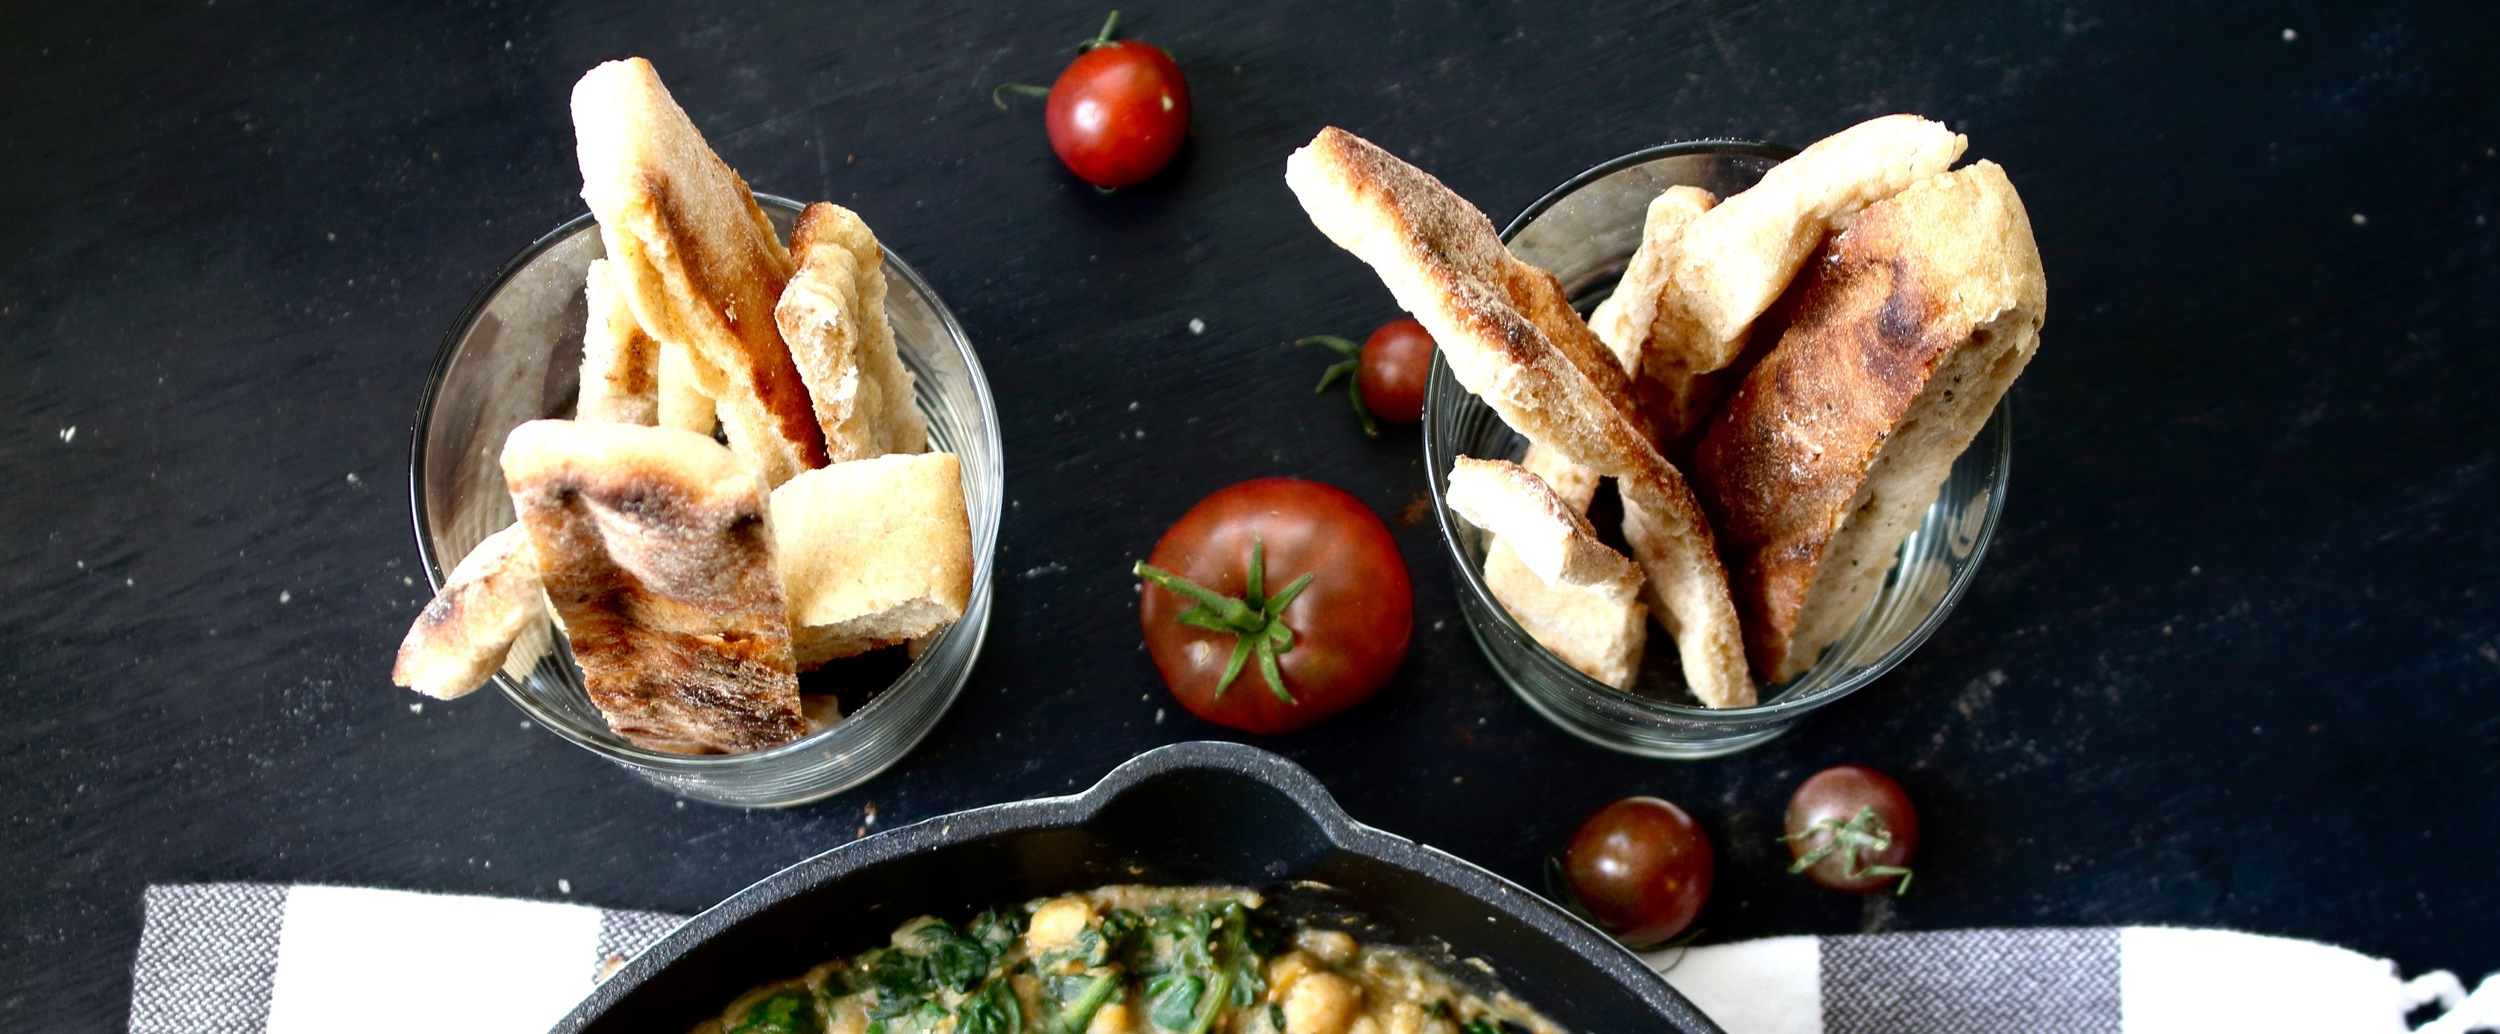 All of It - Spinach Chickpea Cazuela - Pizza dough dipping strips